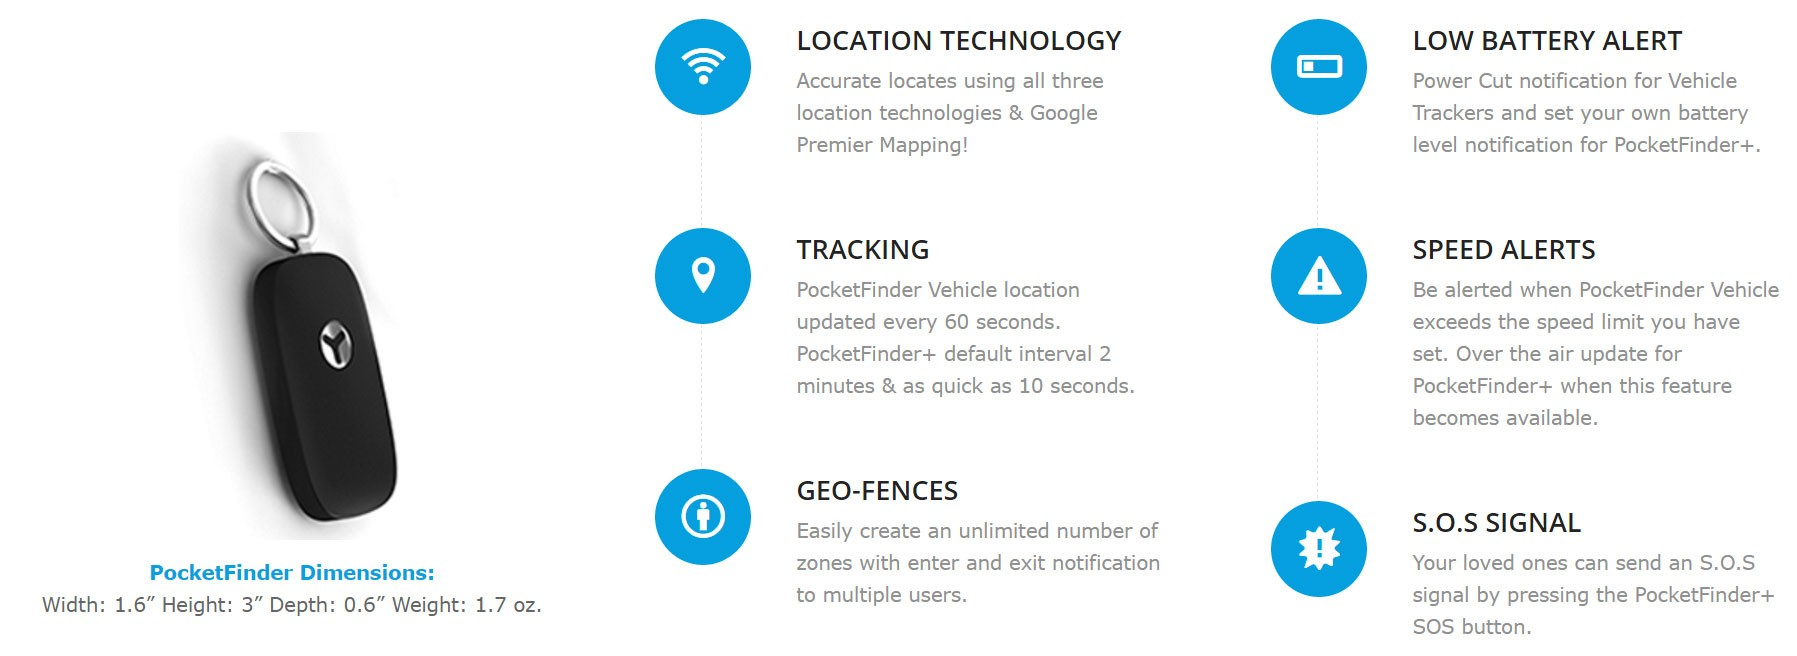 Pocketfinder: Basic device but come with advance features like geo-fencing and speed alerts